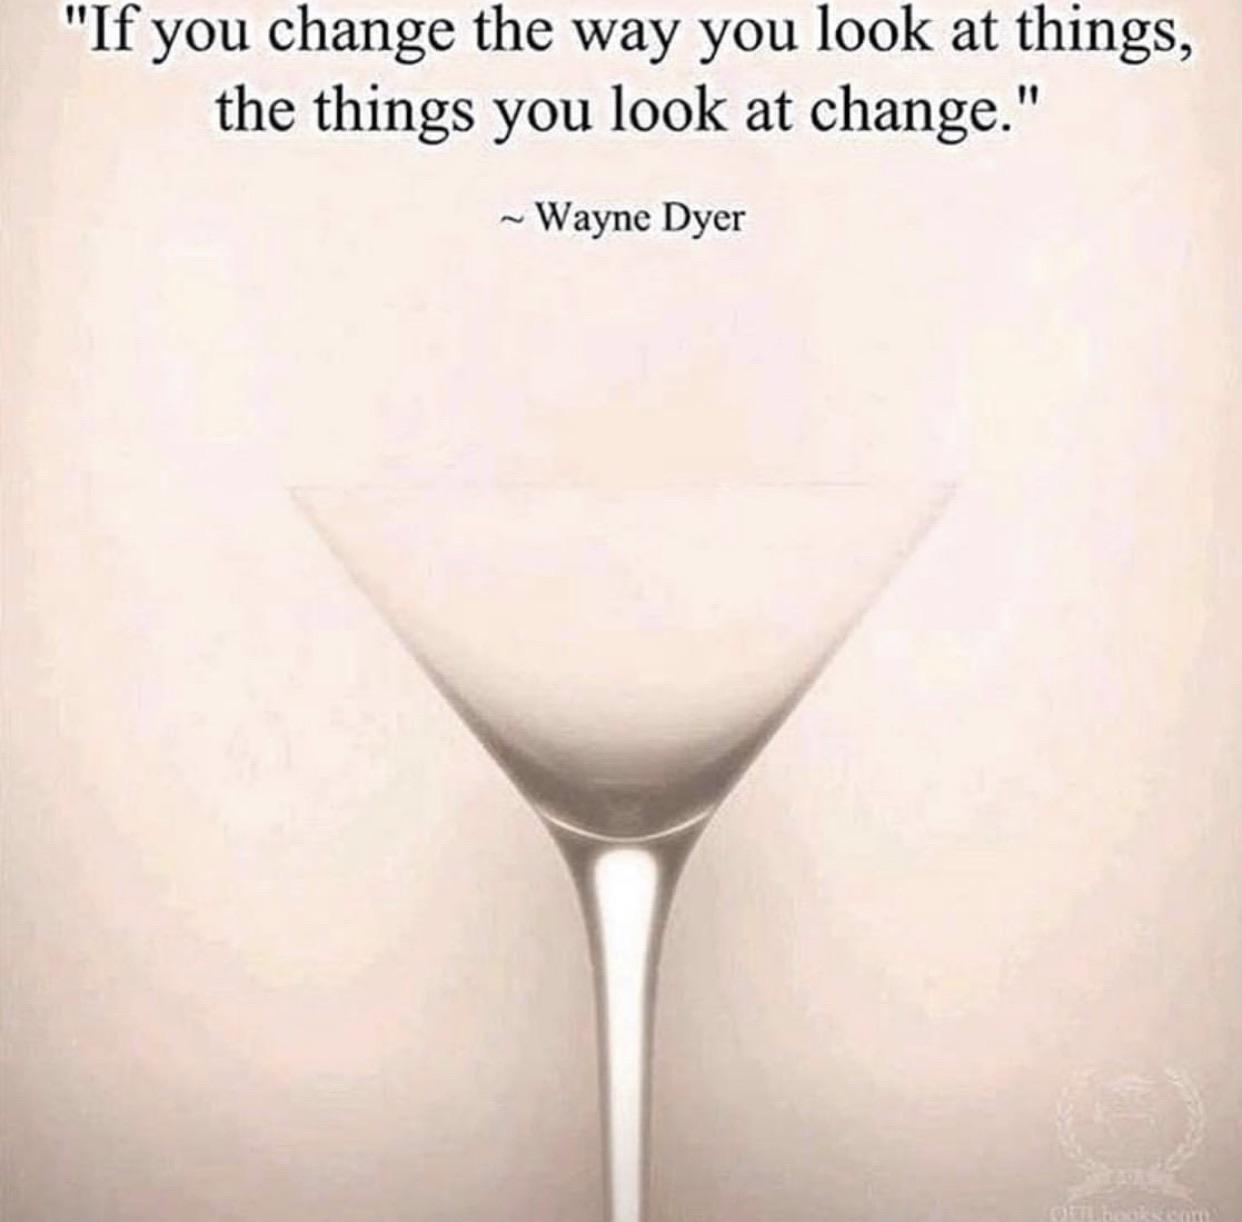 [Image] Change the way you look at things!